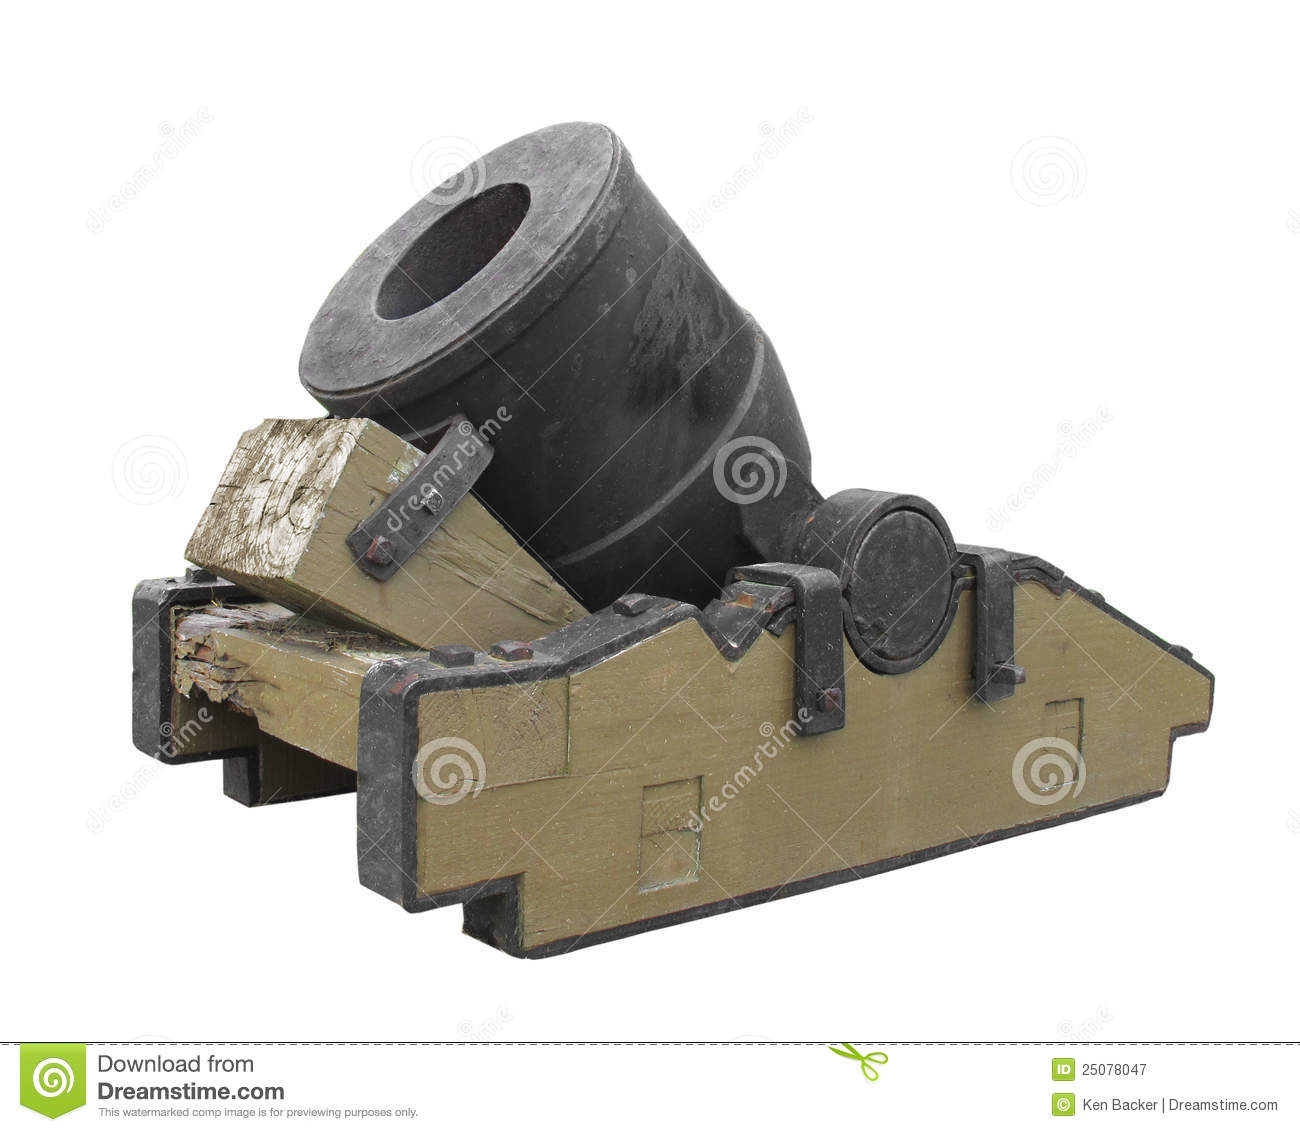 vintage-mortar-cannon-isolated-25078047.